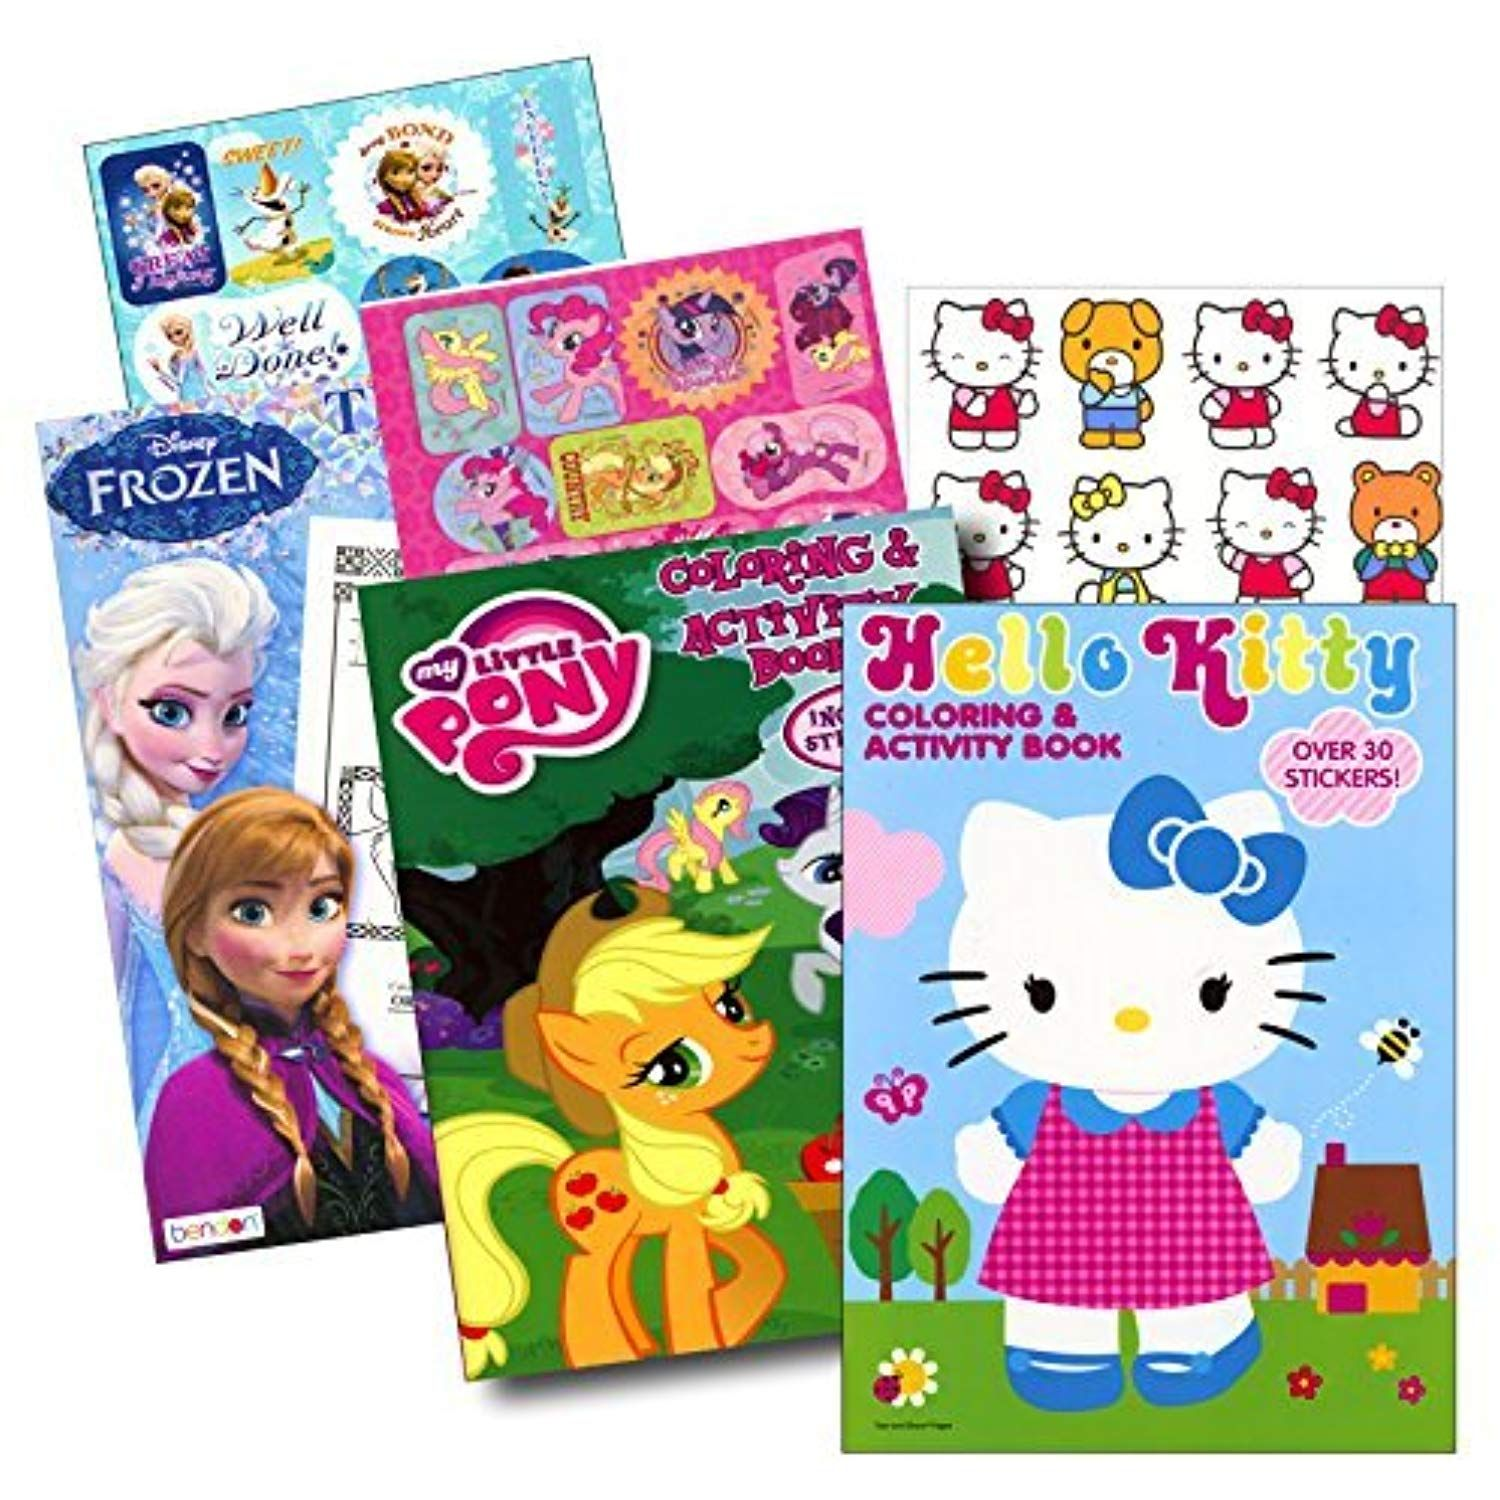 Coloring Books With Stickers Assortment Hello Kitty Coloring Book My Little Pony Coloring Book Hello Kitty Coloring My Little Pony Coloring Frozen Coloring